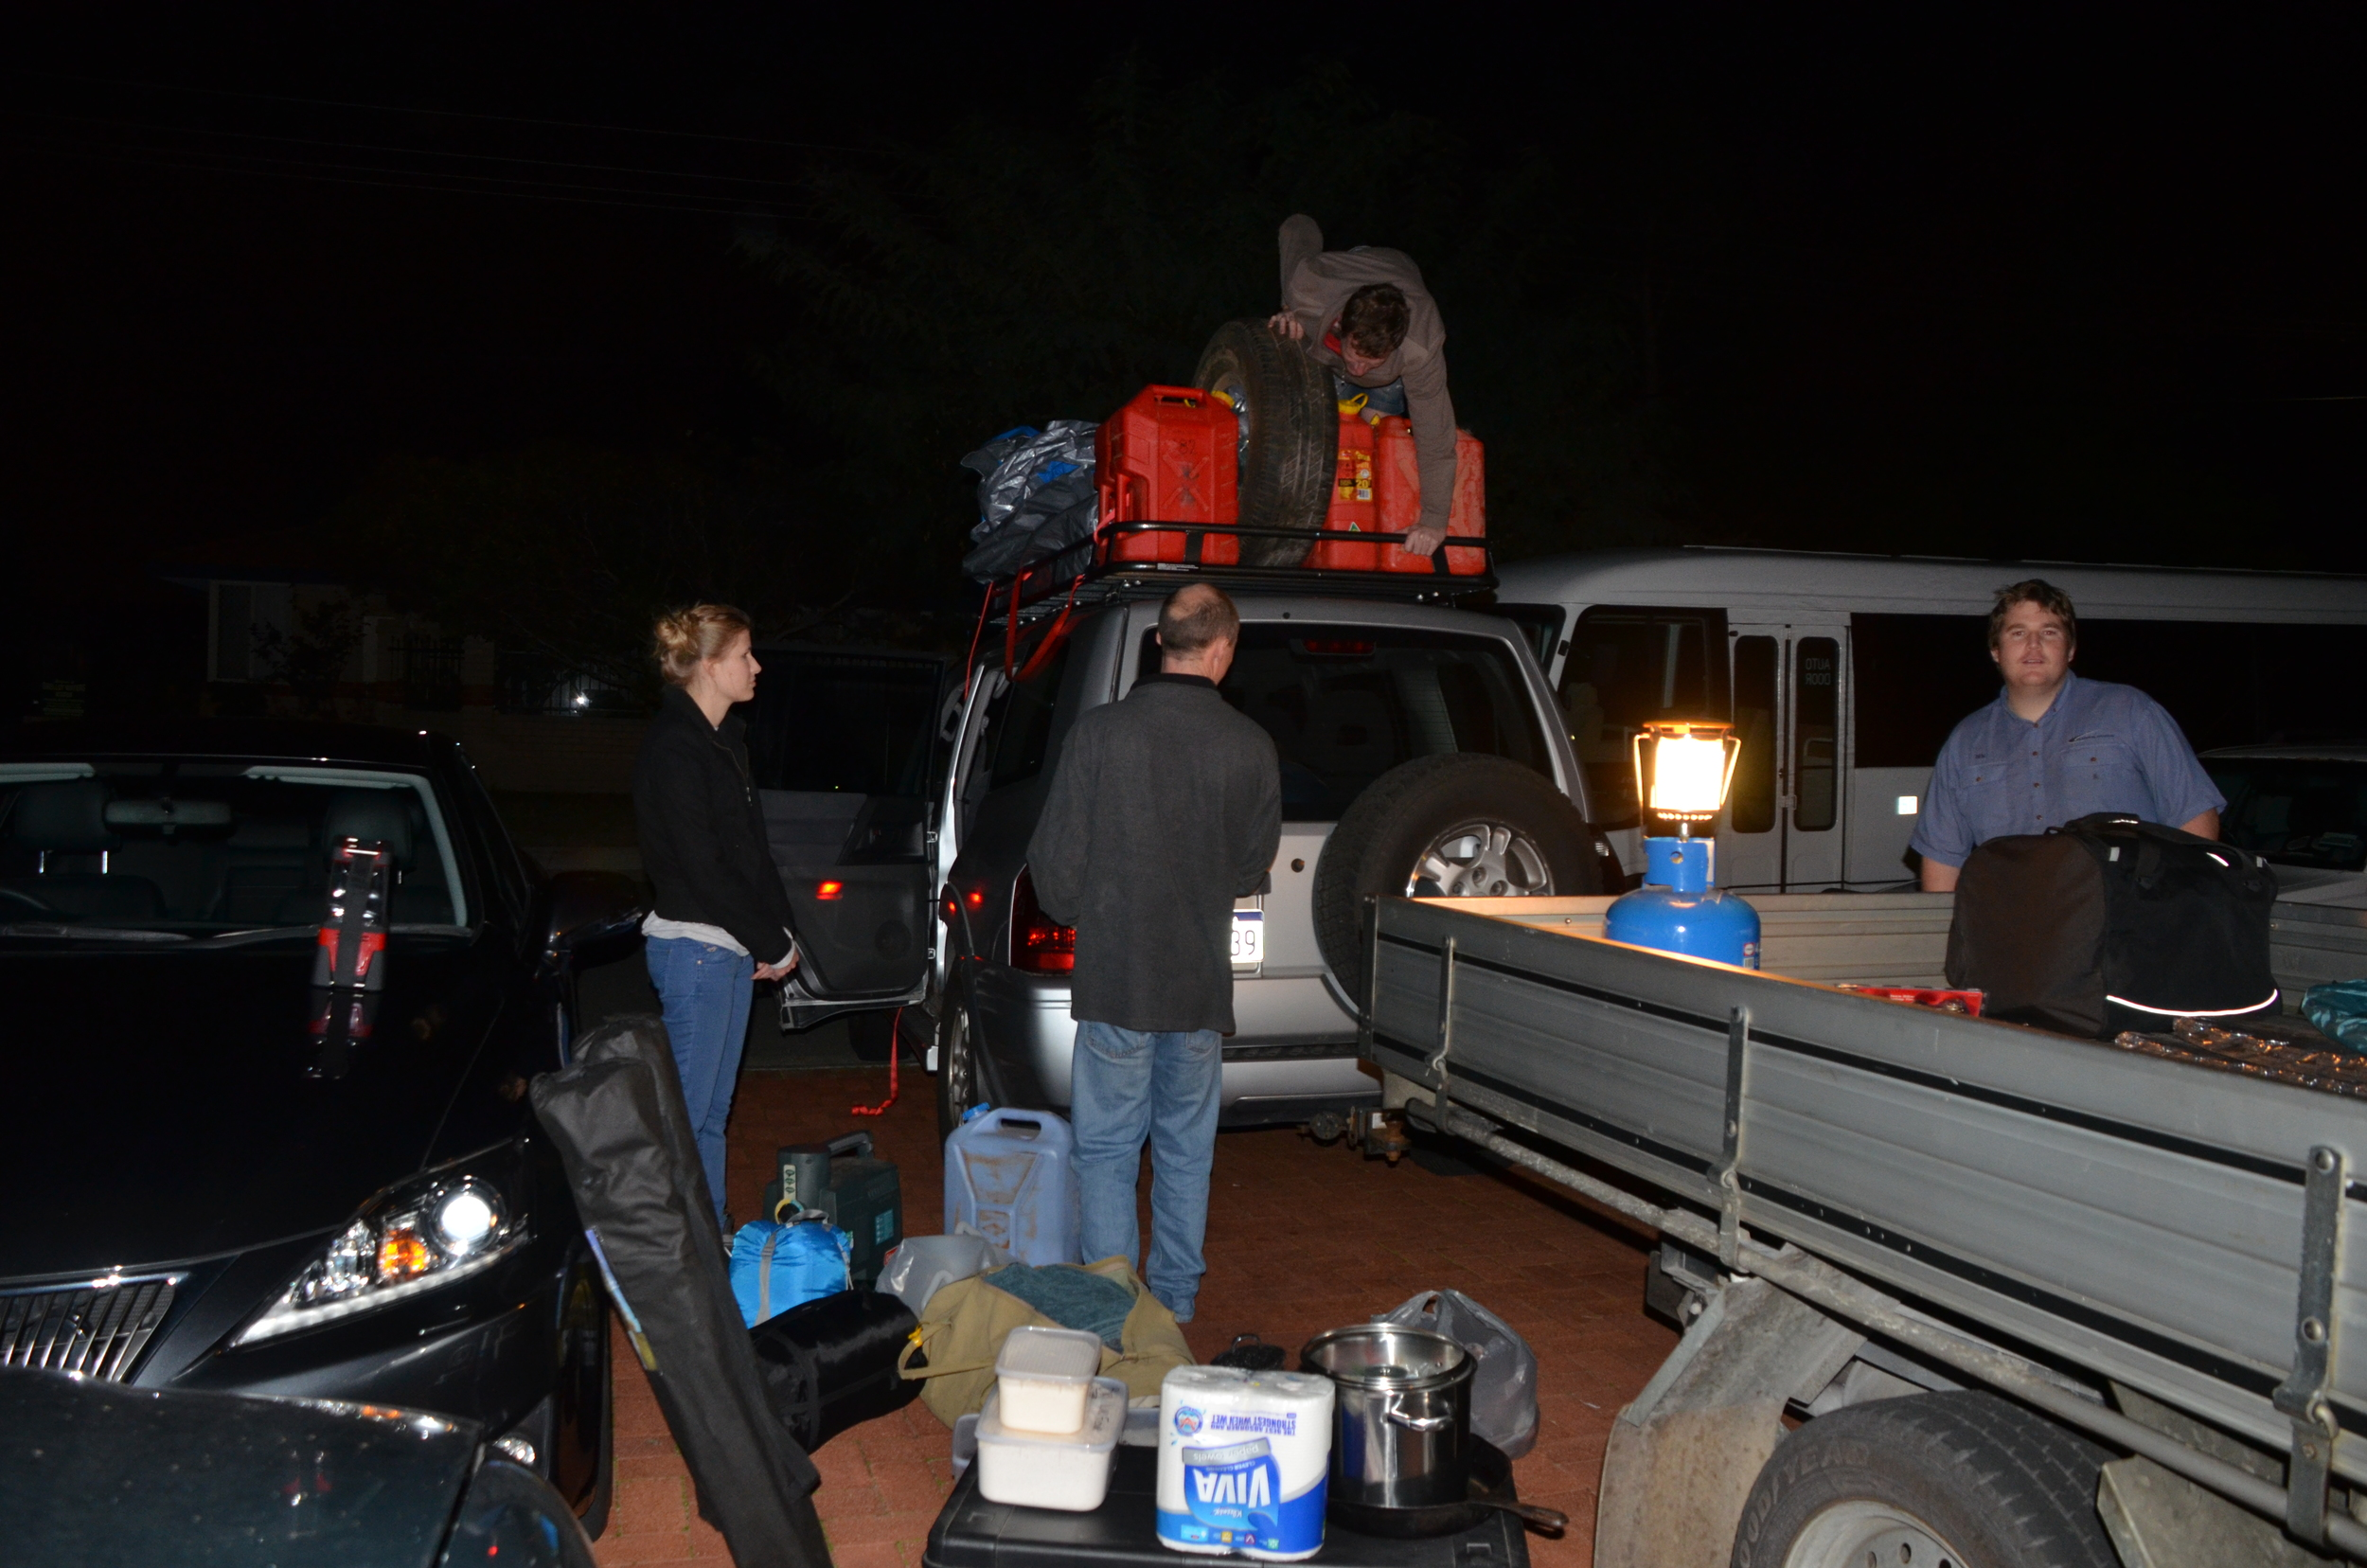 Packing the Pajero the night before we hit the road